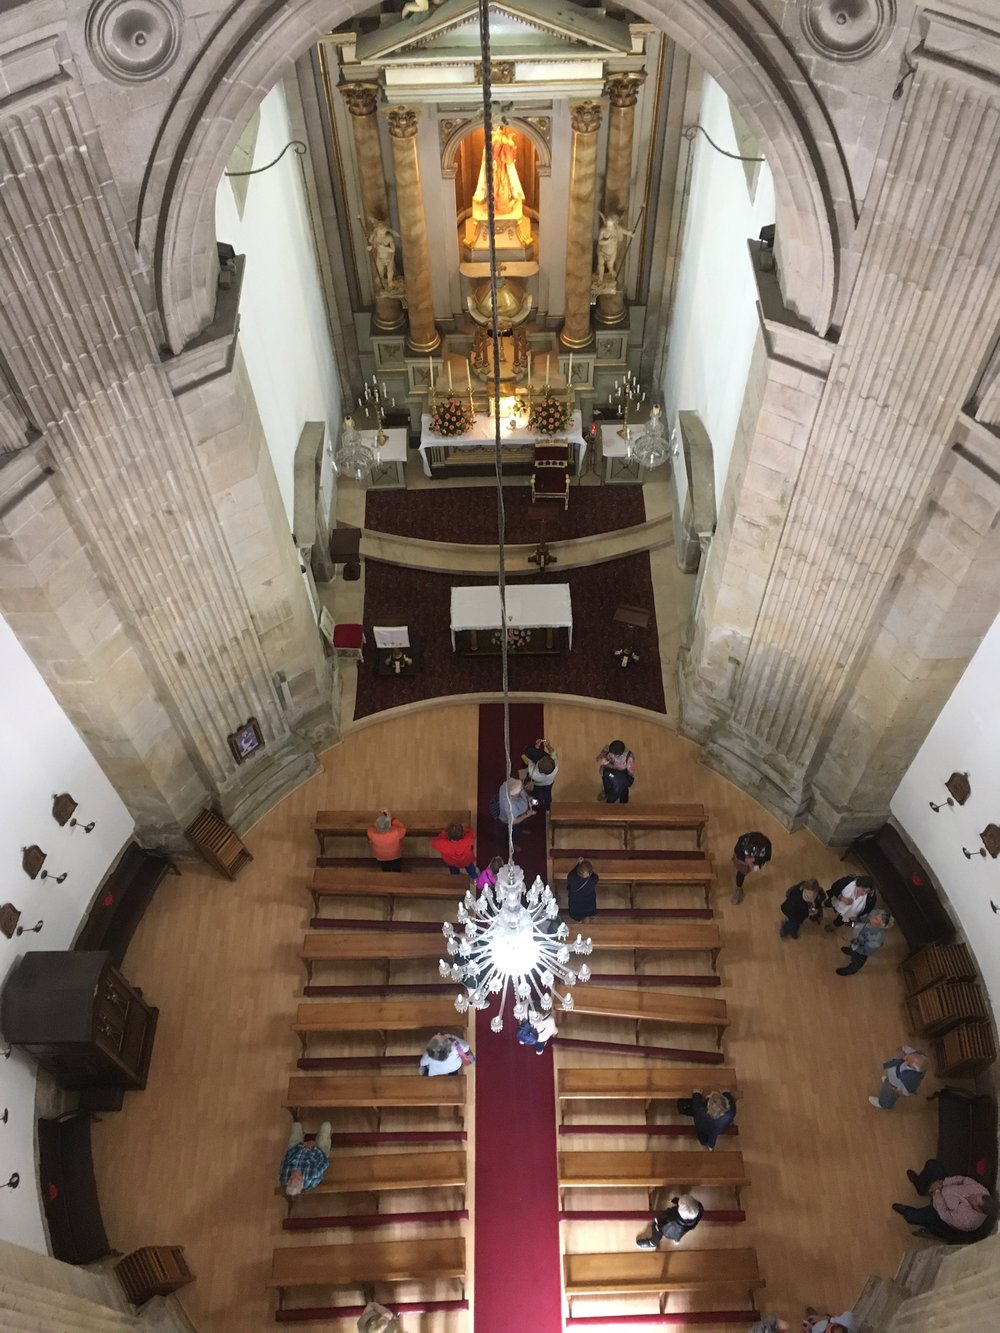 The view from the top of the chapel, the architect designed it in the shape of a scallop shell to signify the Camino!